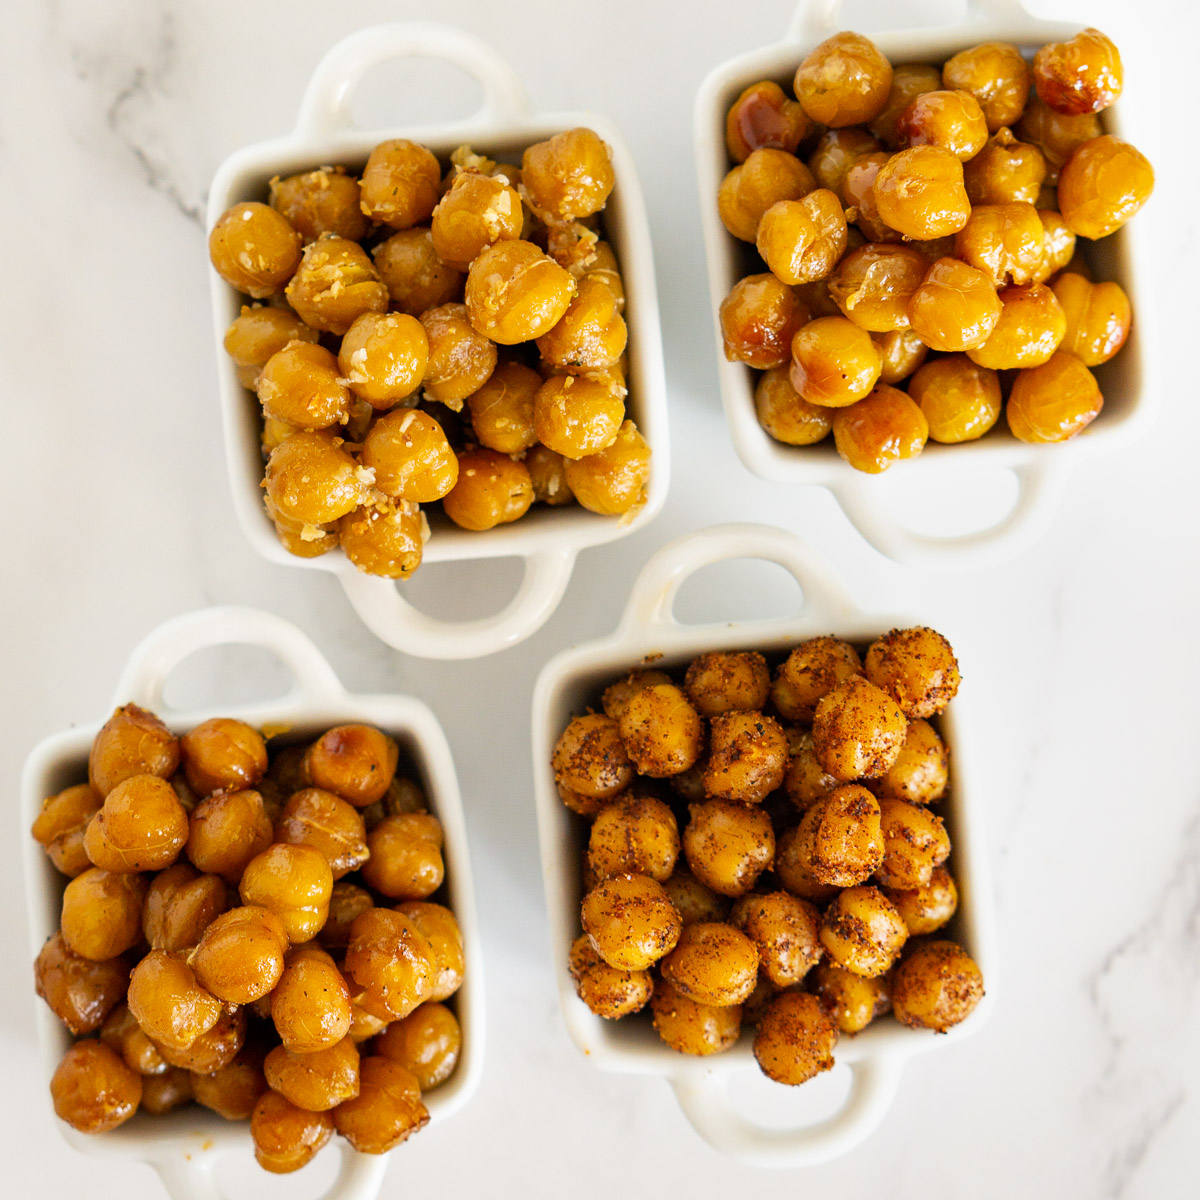 roasted chickpeas in small dishes